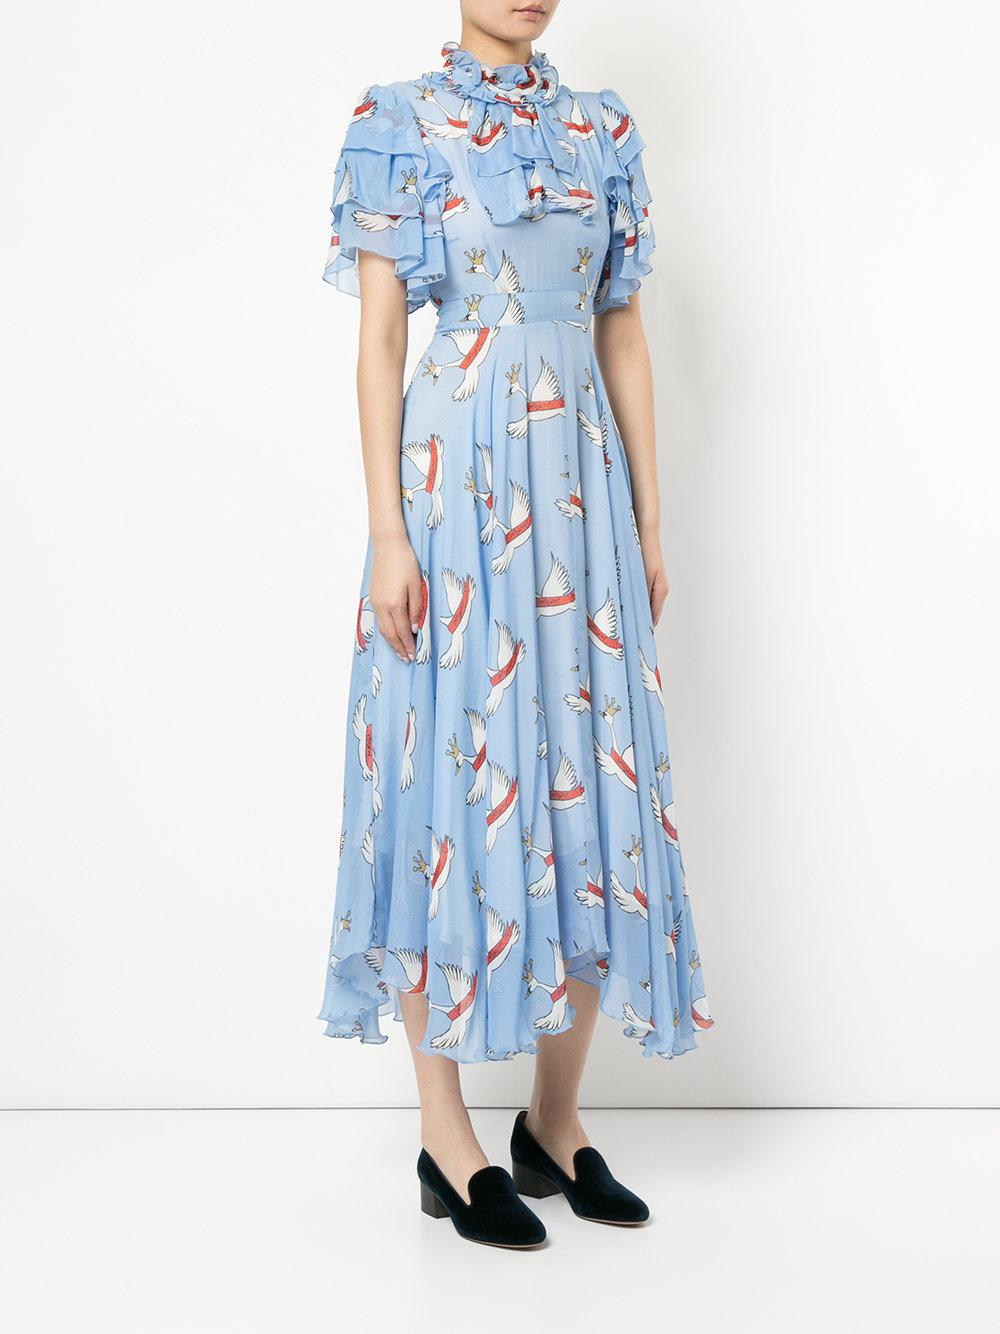 DRESSES - Knee-length dresses macgraw Outlet Locations Cheap Price Cheap Online Shop Clearance Big Sale Cheap Sale Latest Collections Clearance Best Store To Get EimS3sw